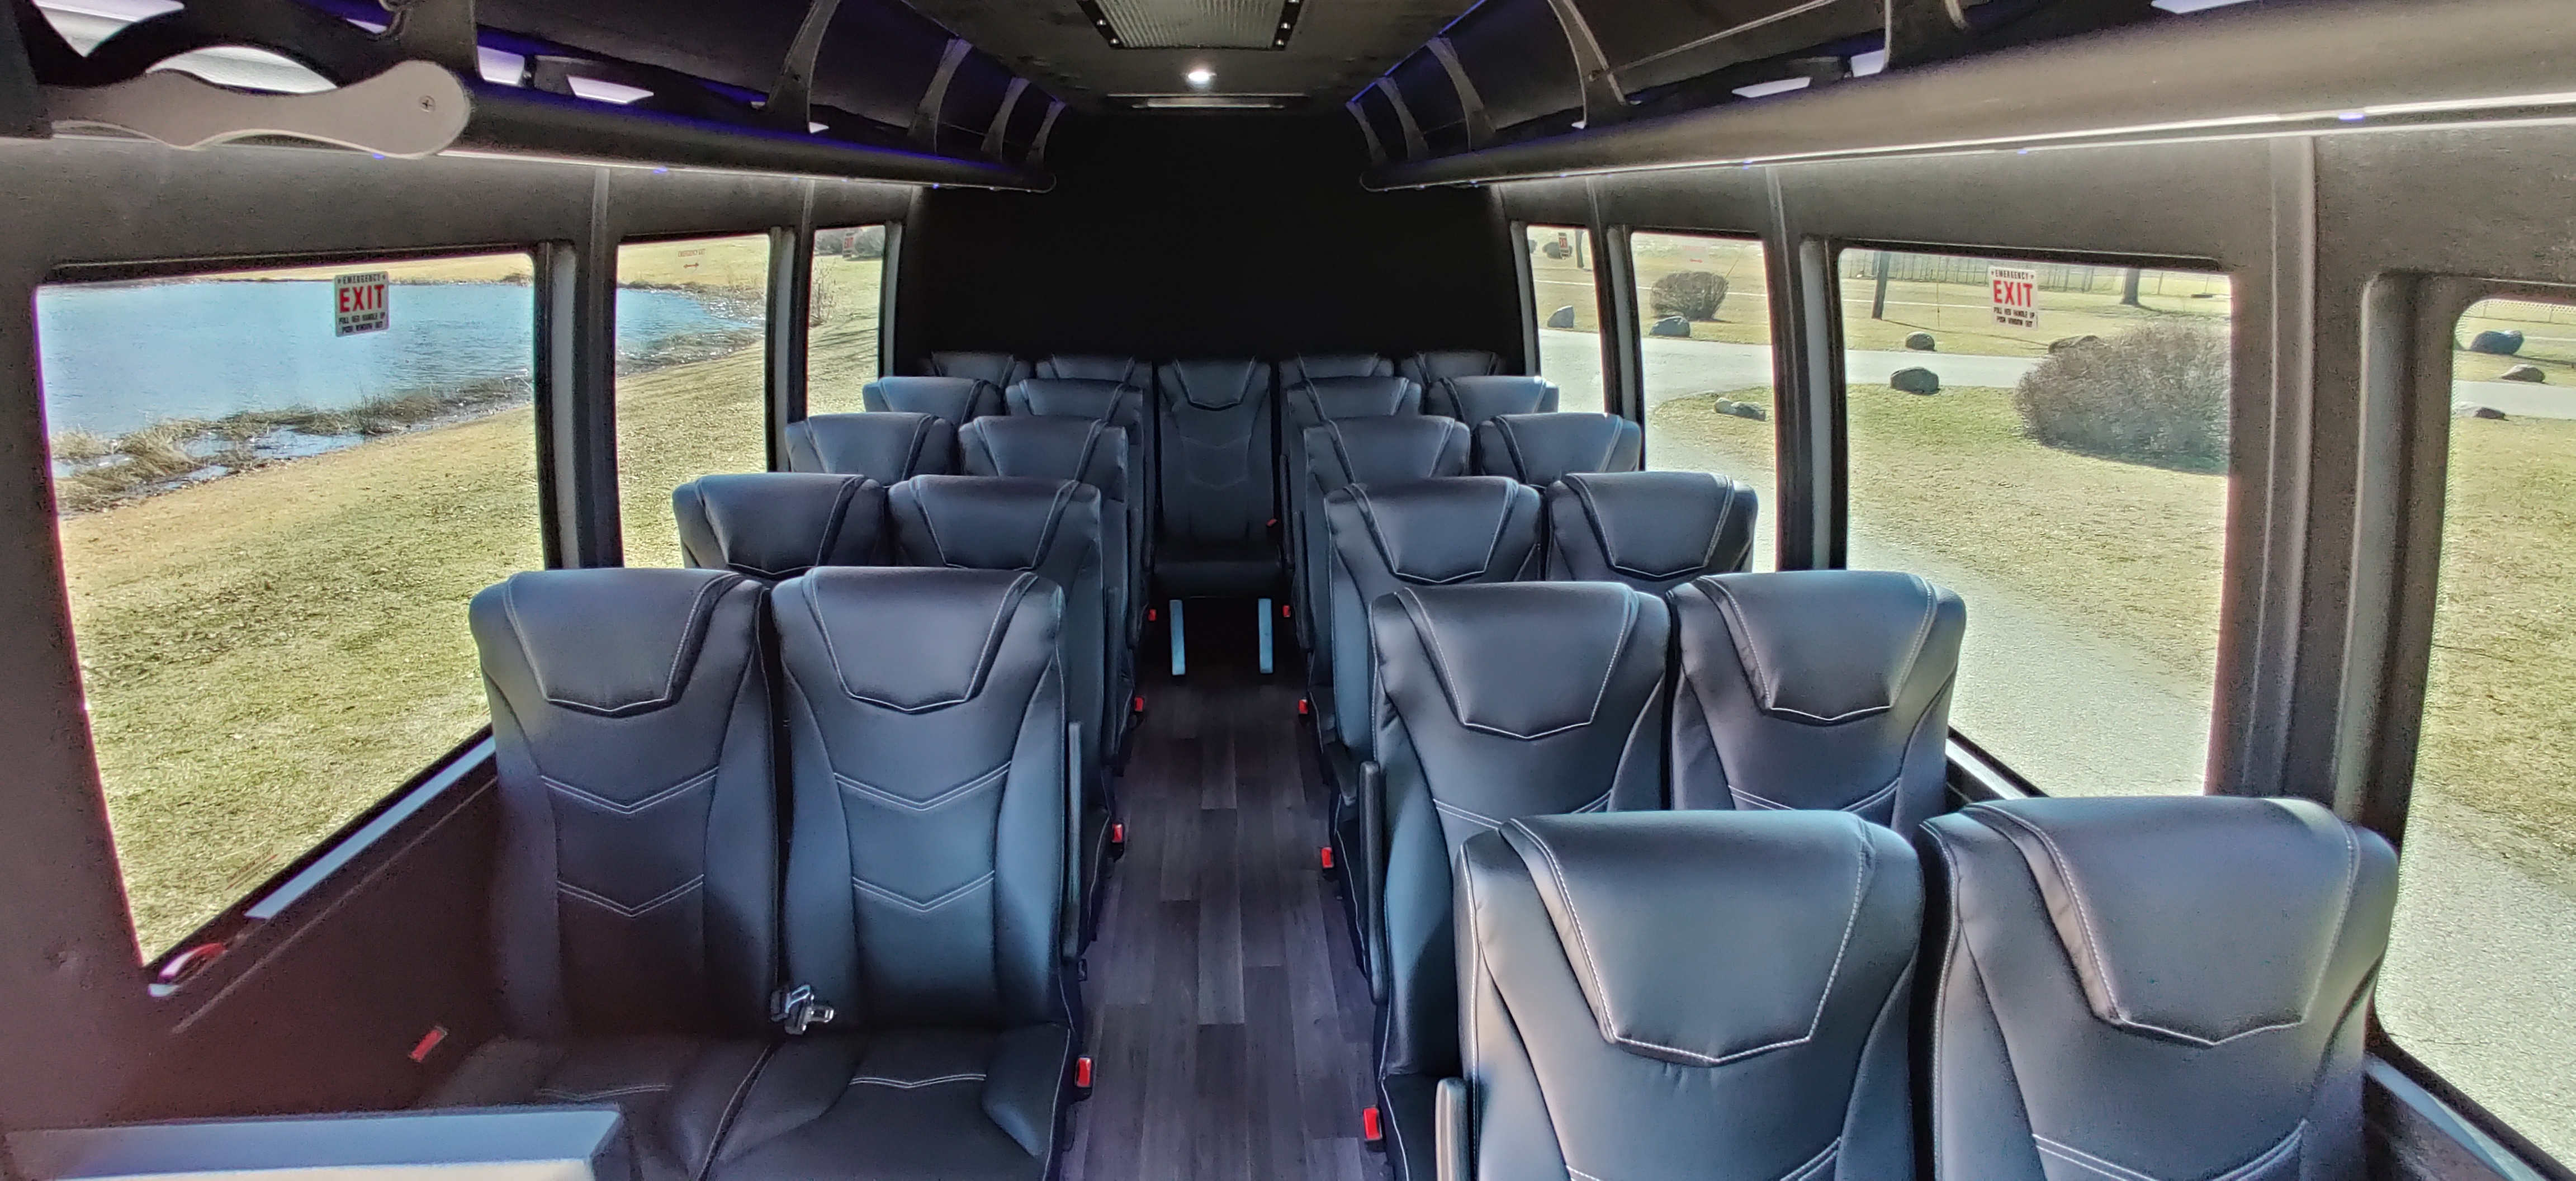 23 Passenger Executive Shuttle Bus Interior 2